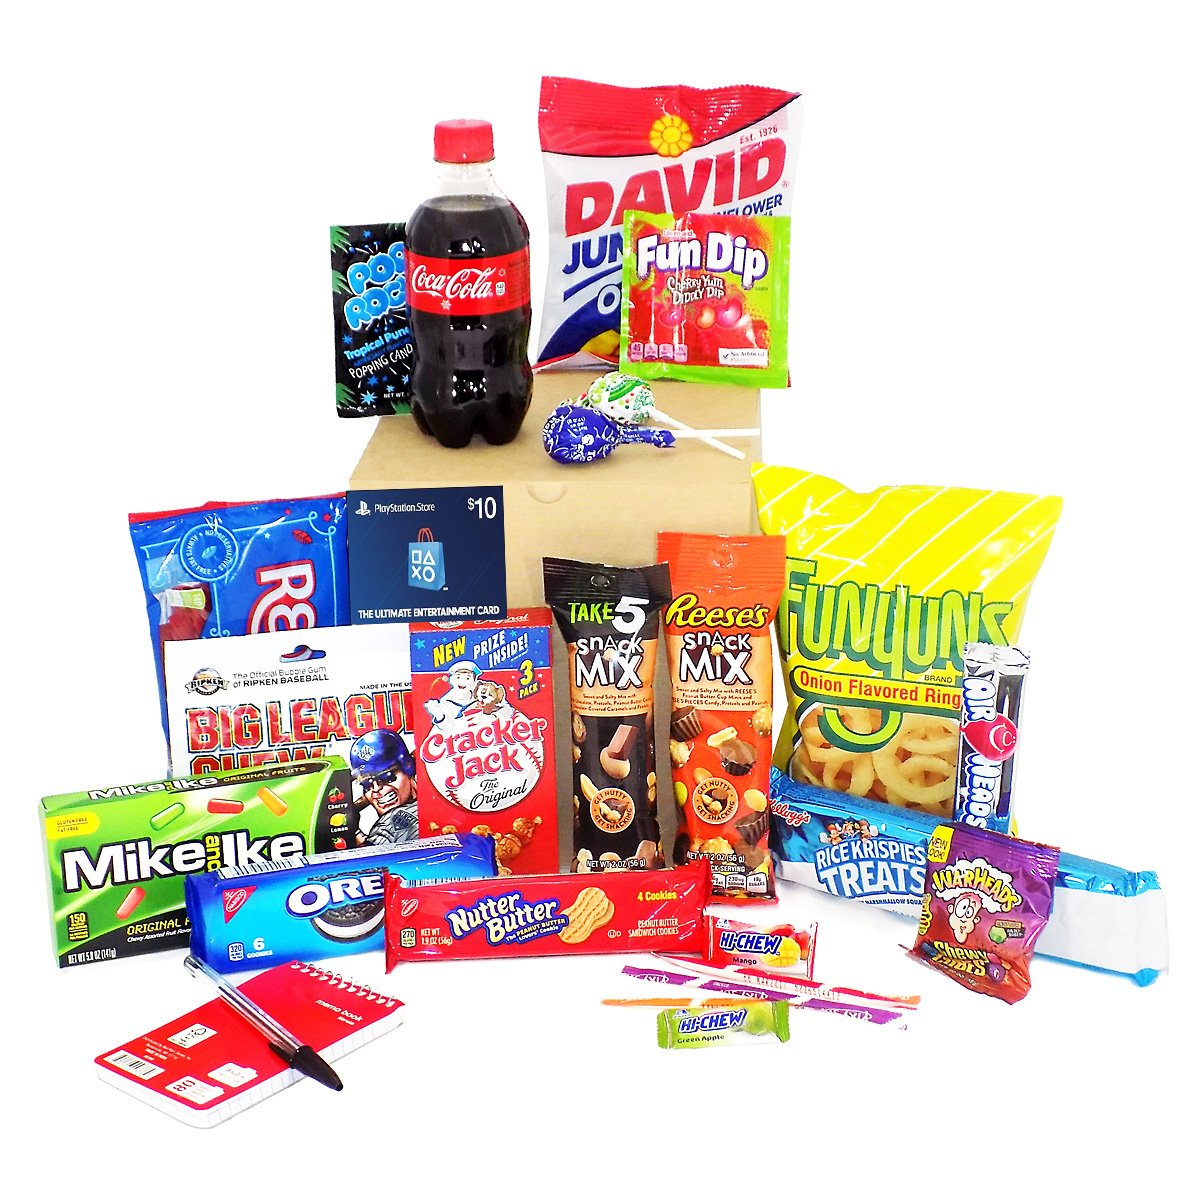 Video Gamer Gift Basket Care Package - For the Gamer in Your Life! (Playstation Network)